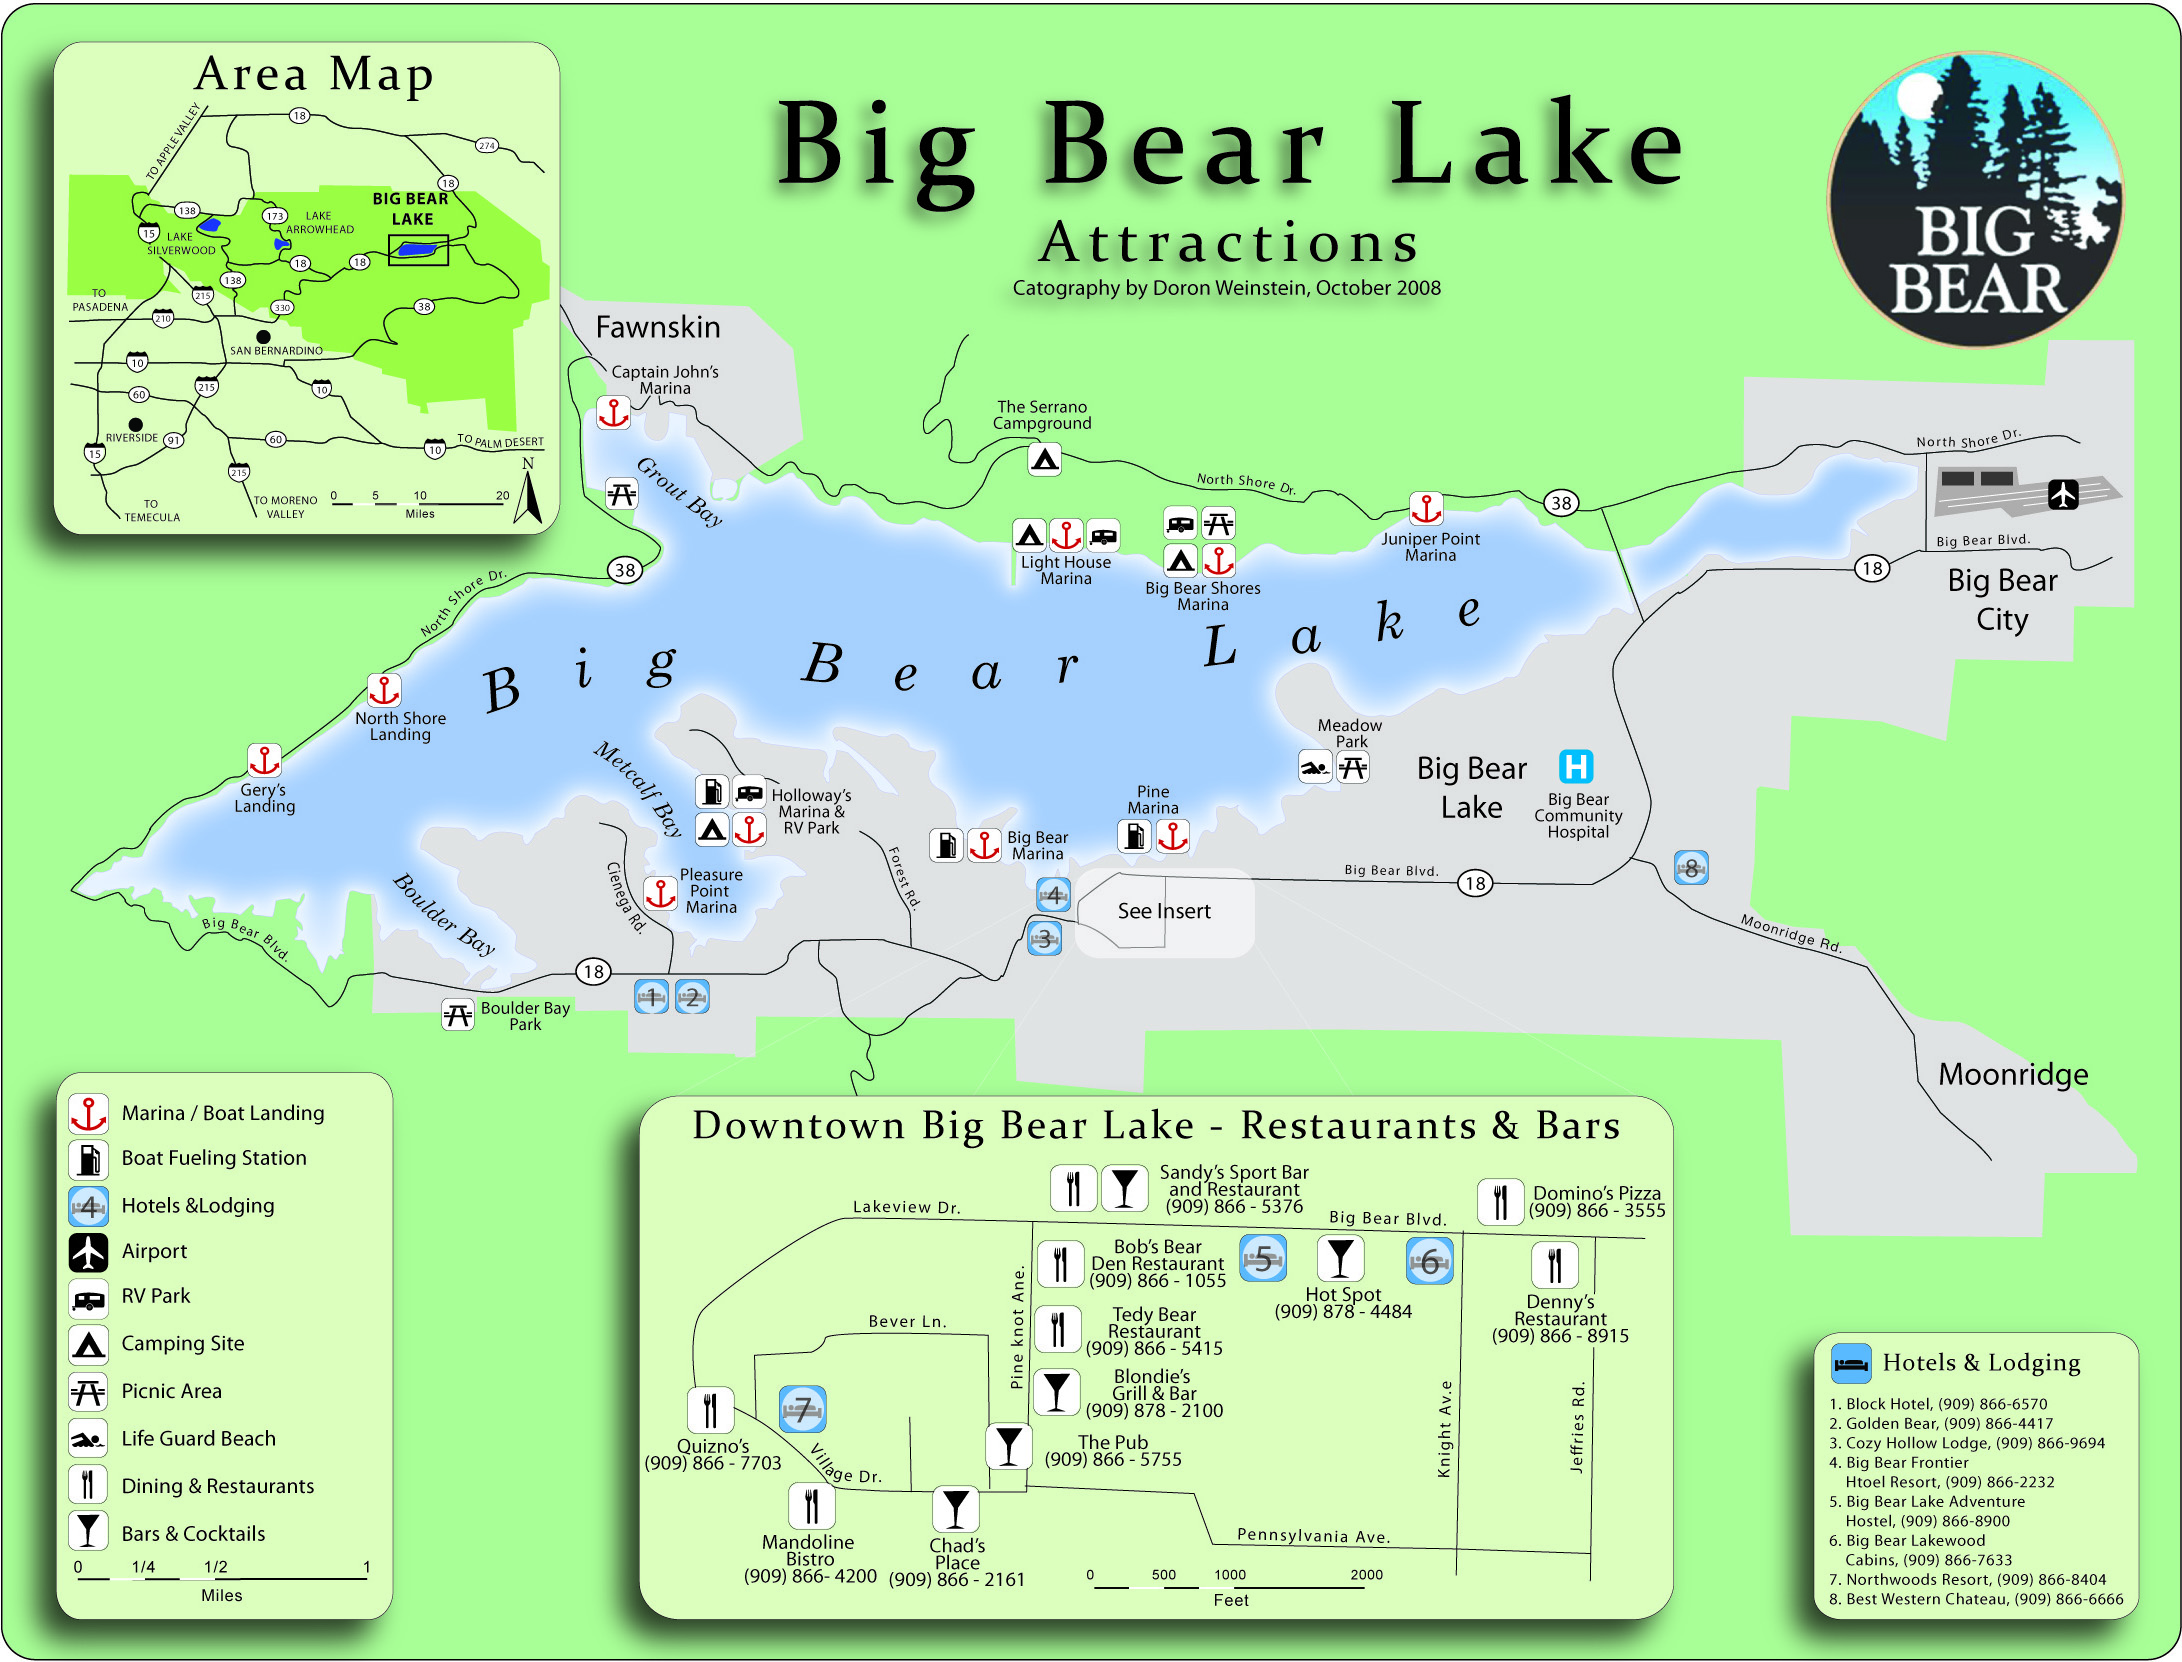 Big Bear Lake Map Map Me Home on home acronym, home text, home details, home insurance agents, home parking, home mape, home area, home design, home adress, home climate, home walk through, home tips, home start, home information, home thumbnail, home restaurant, home decor, home home, home blog,